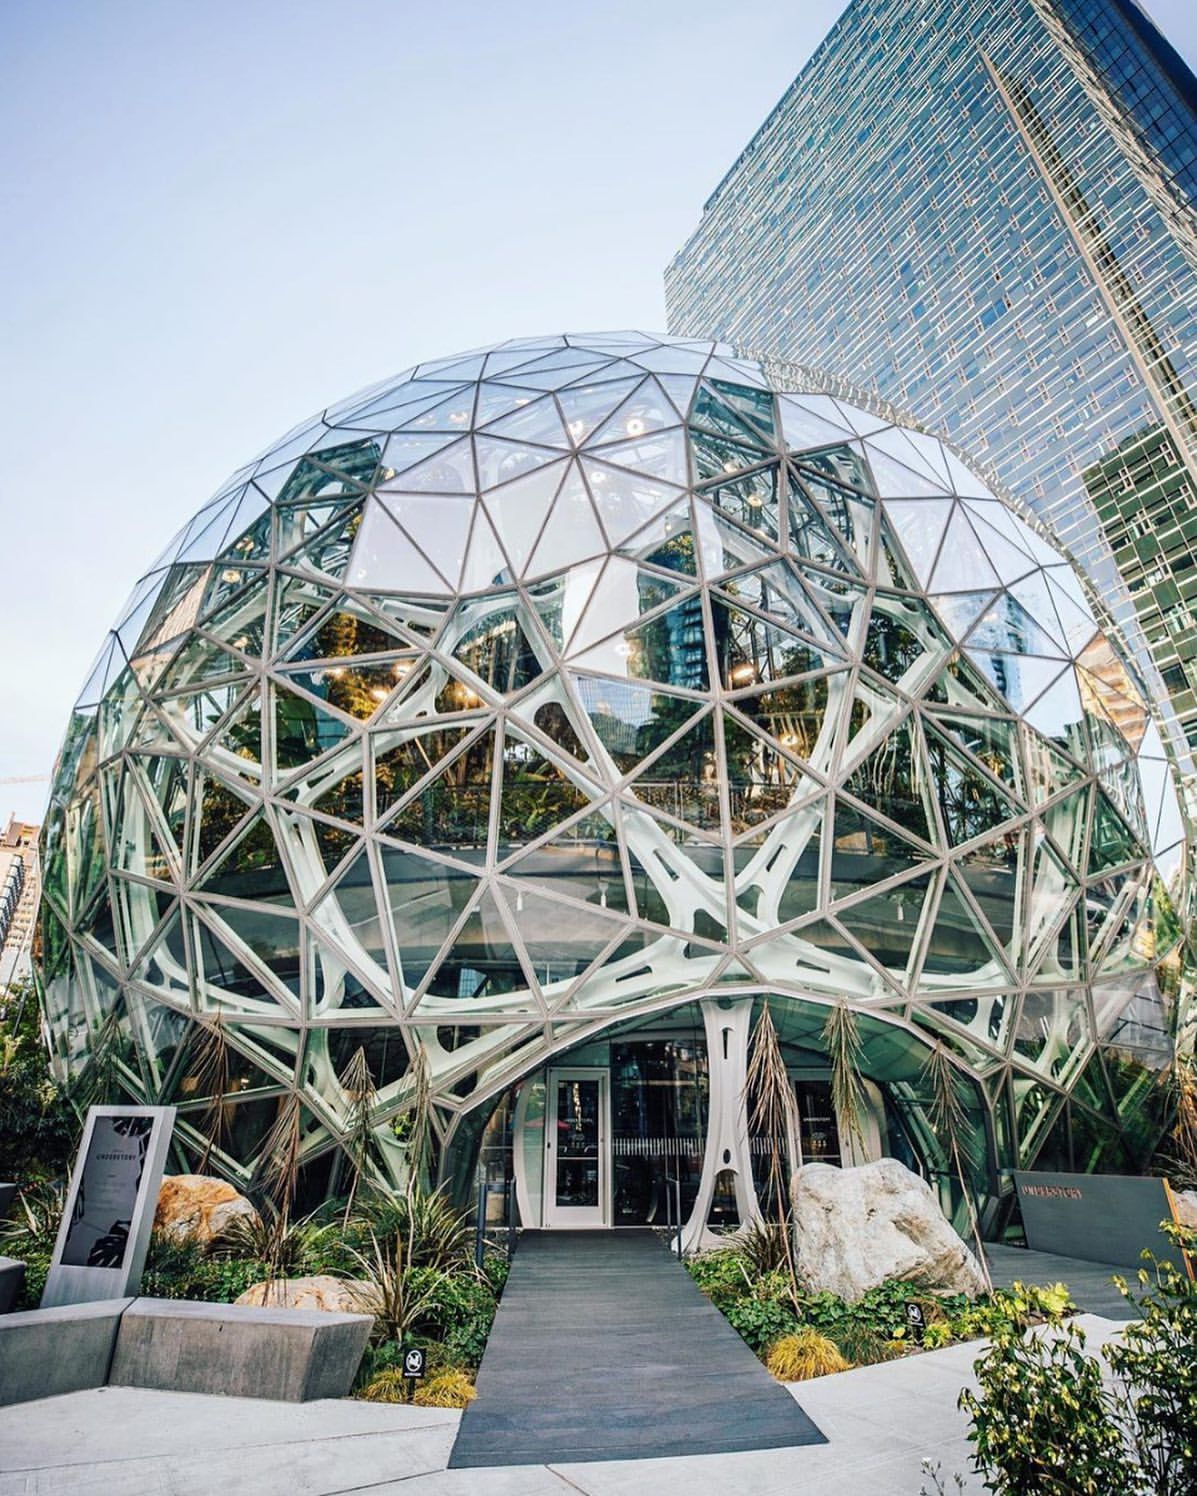 Amazon headquarters in Seattle Image Credit - r/ArchitecturePorn